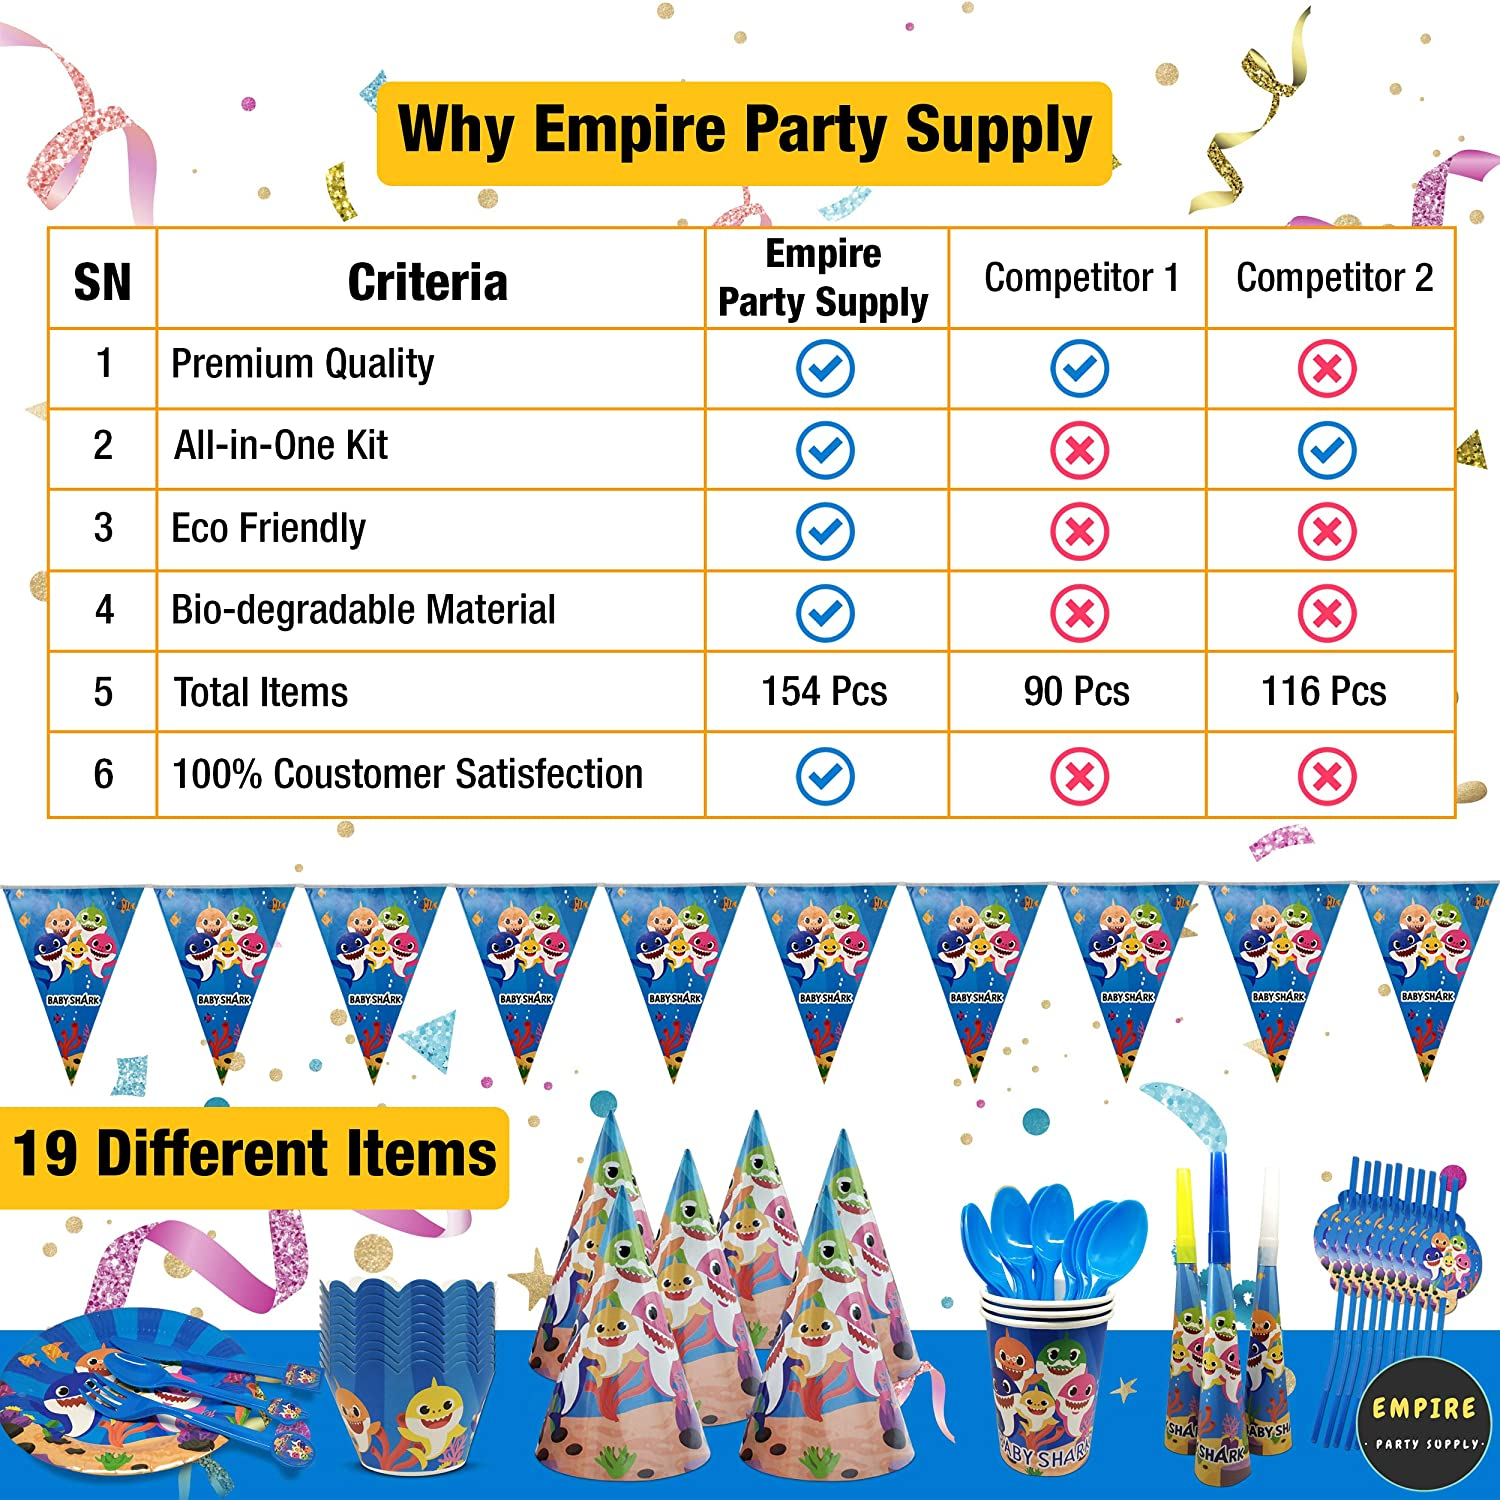 Gift Bag Blowing Dragon Paper Pennant /& Party Favor Cake Toppers Disposable Tableware Kit 154 Pc Baby Shark Party Supplies- Shark Themed Birthday Decorations Banner Balloon Hats Blowouts